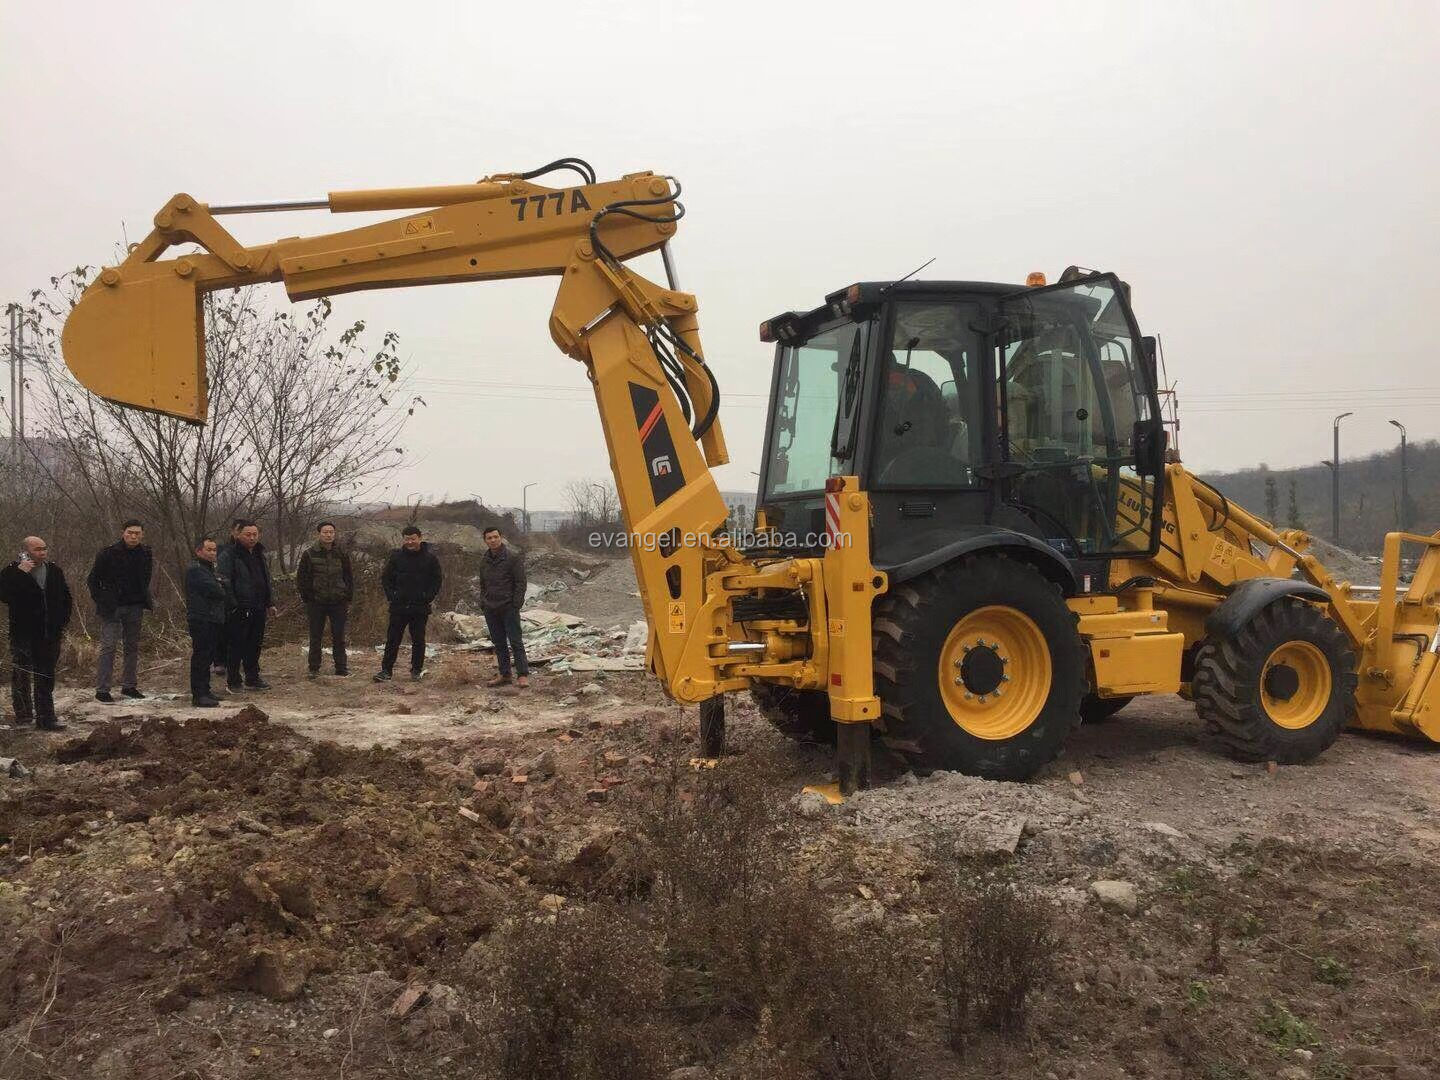 LIUGONG 777A compact backhoe loader with hammer